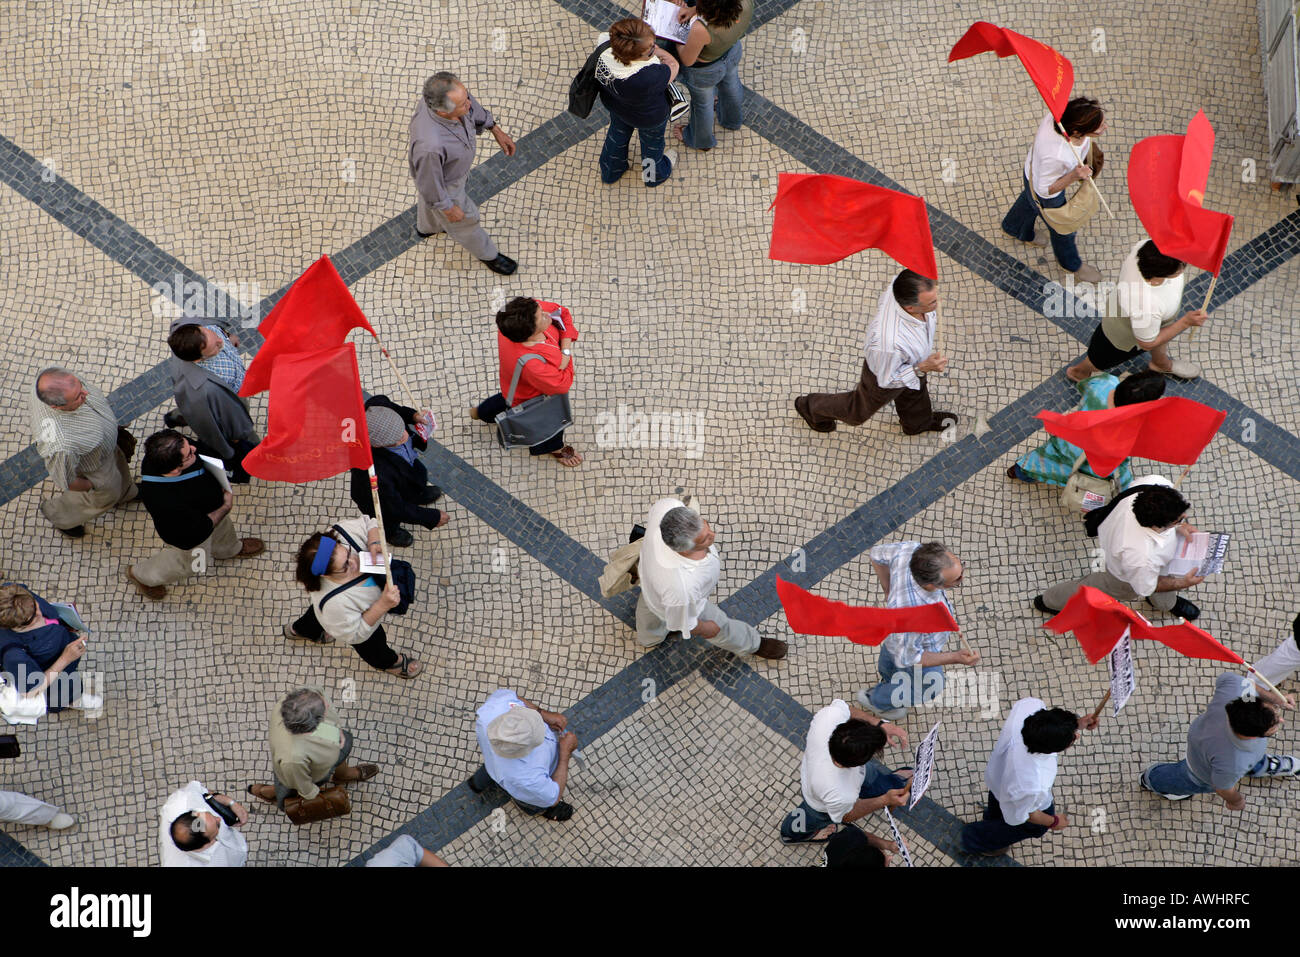 The Communist Part of Portugal stages a rally with their red flags and marches down Rua Augusta on their way to - Stock Image